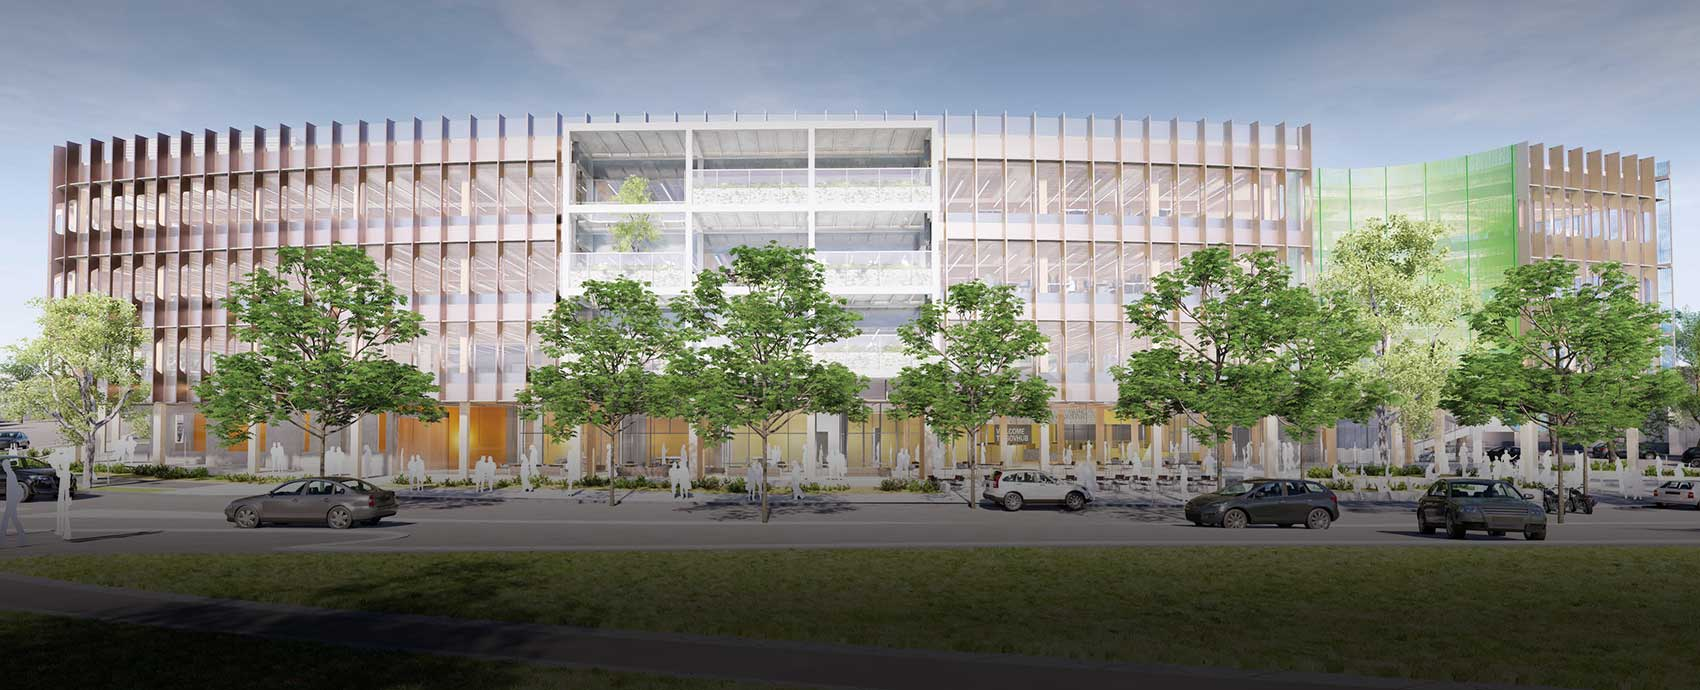 Artistic impression of the Bendigo GovHub